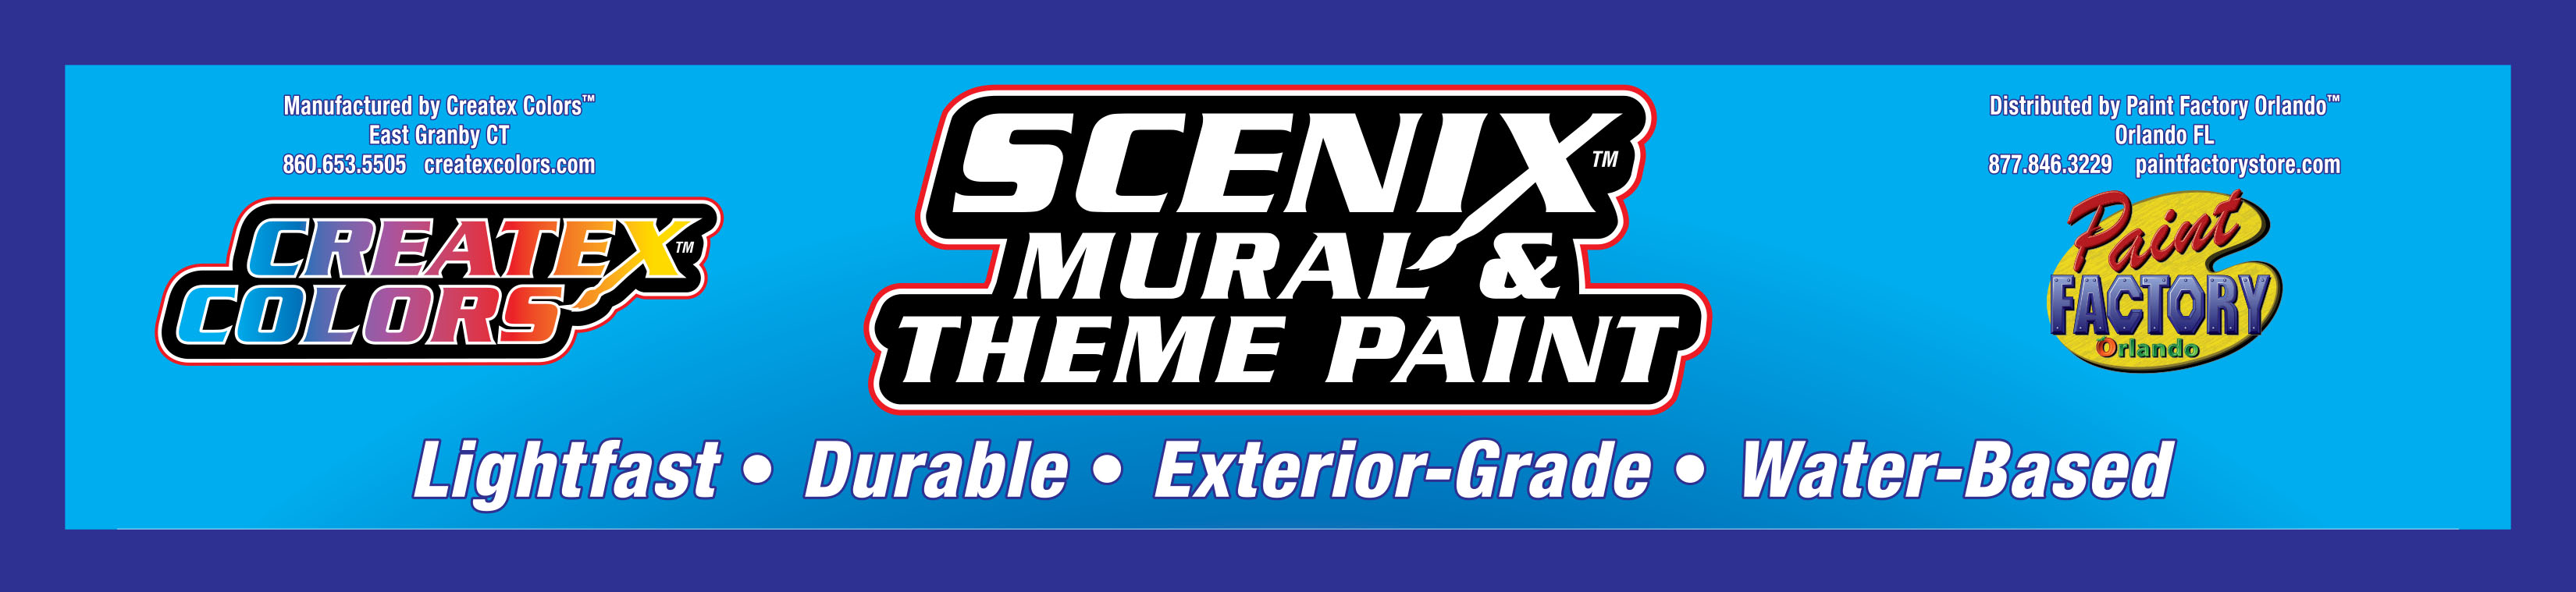 Scenix Paints